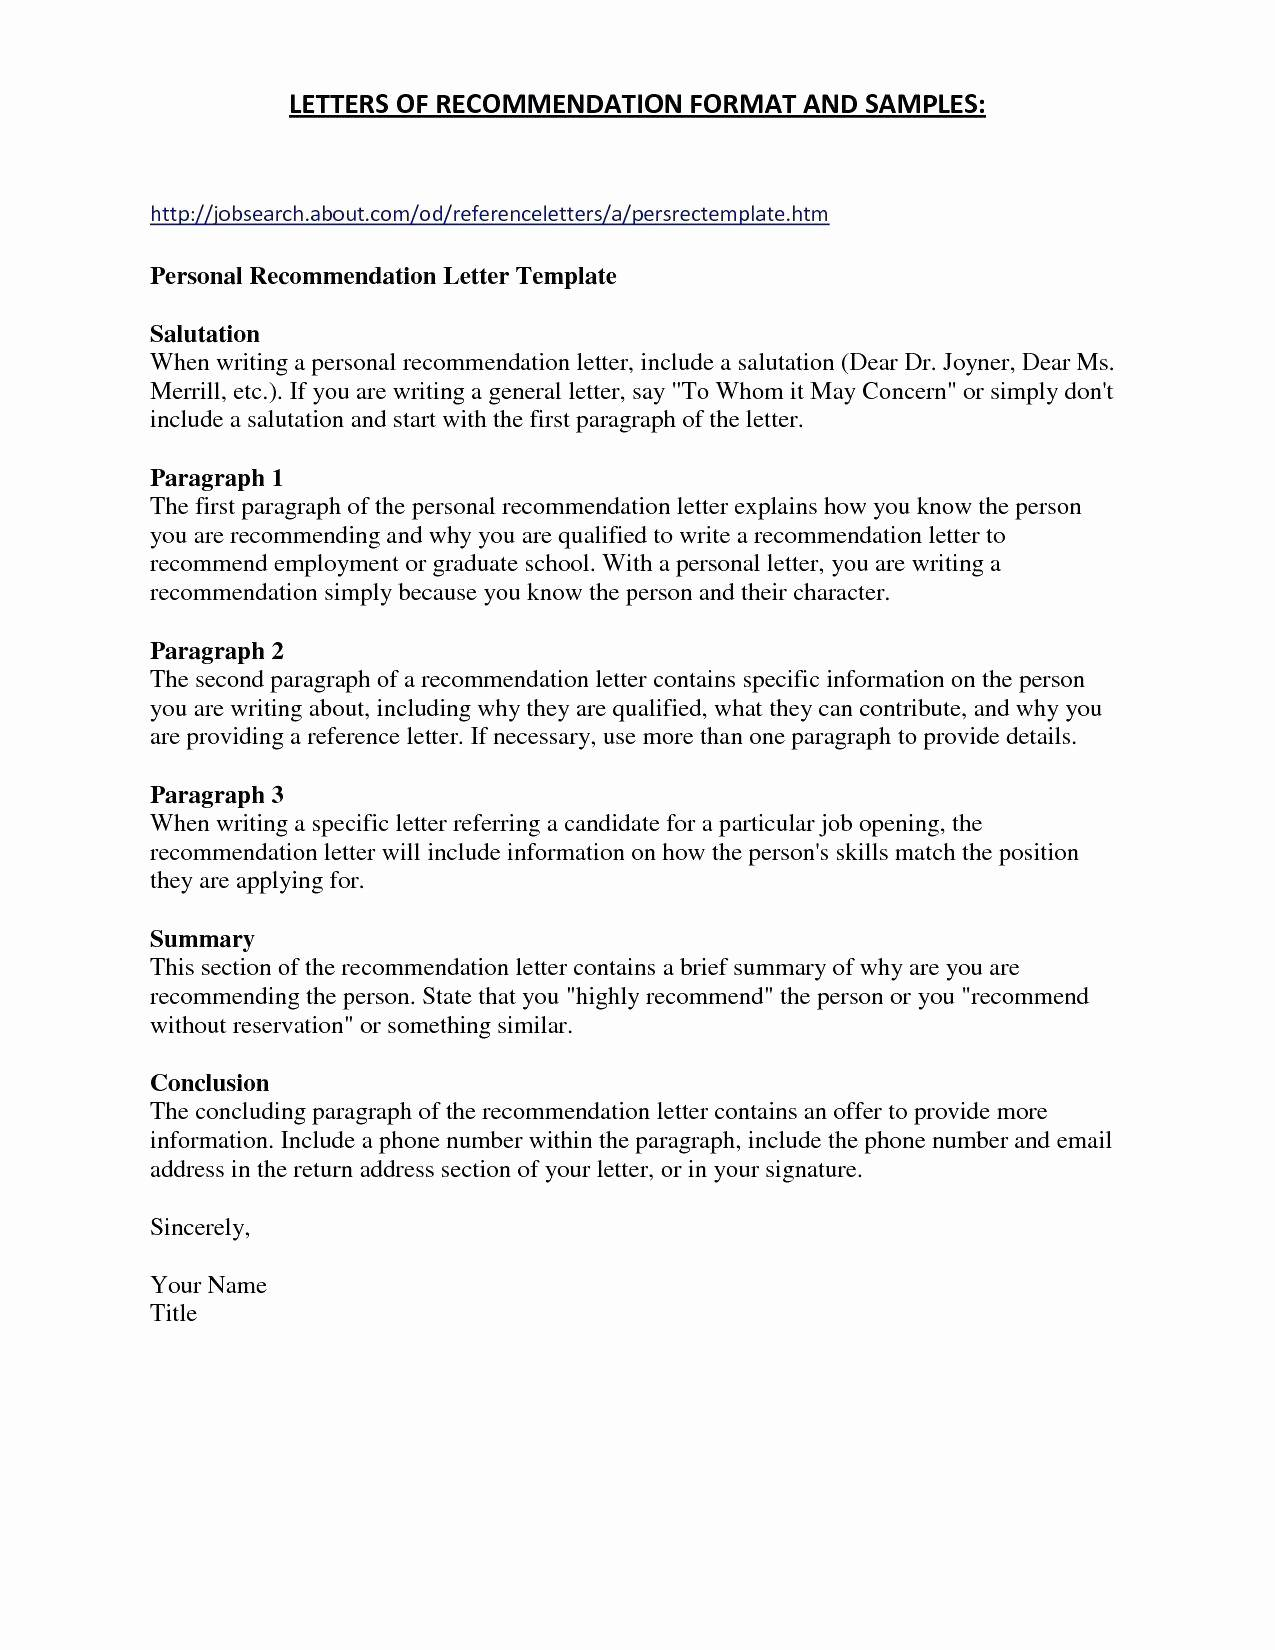 Landlord Reference Letter Template - Giving Notice to Landlord Template Elegant Template General